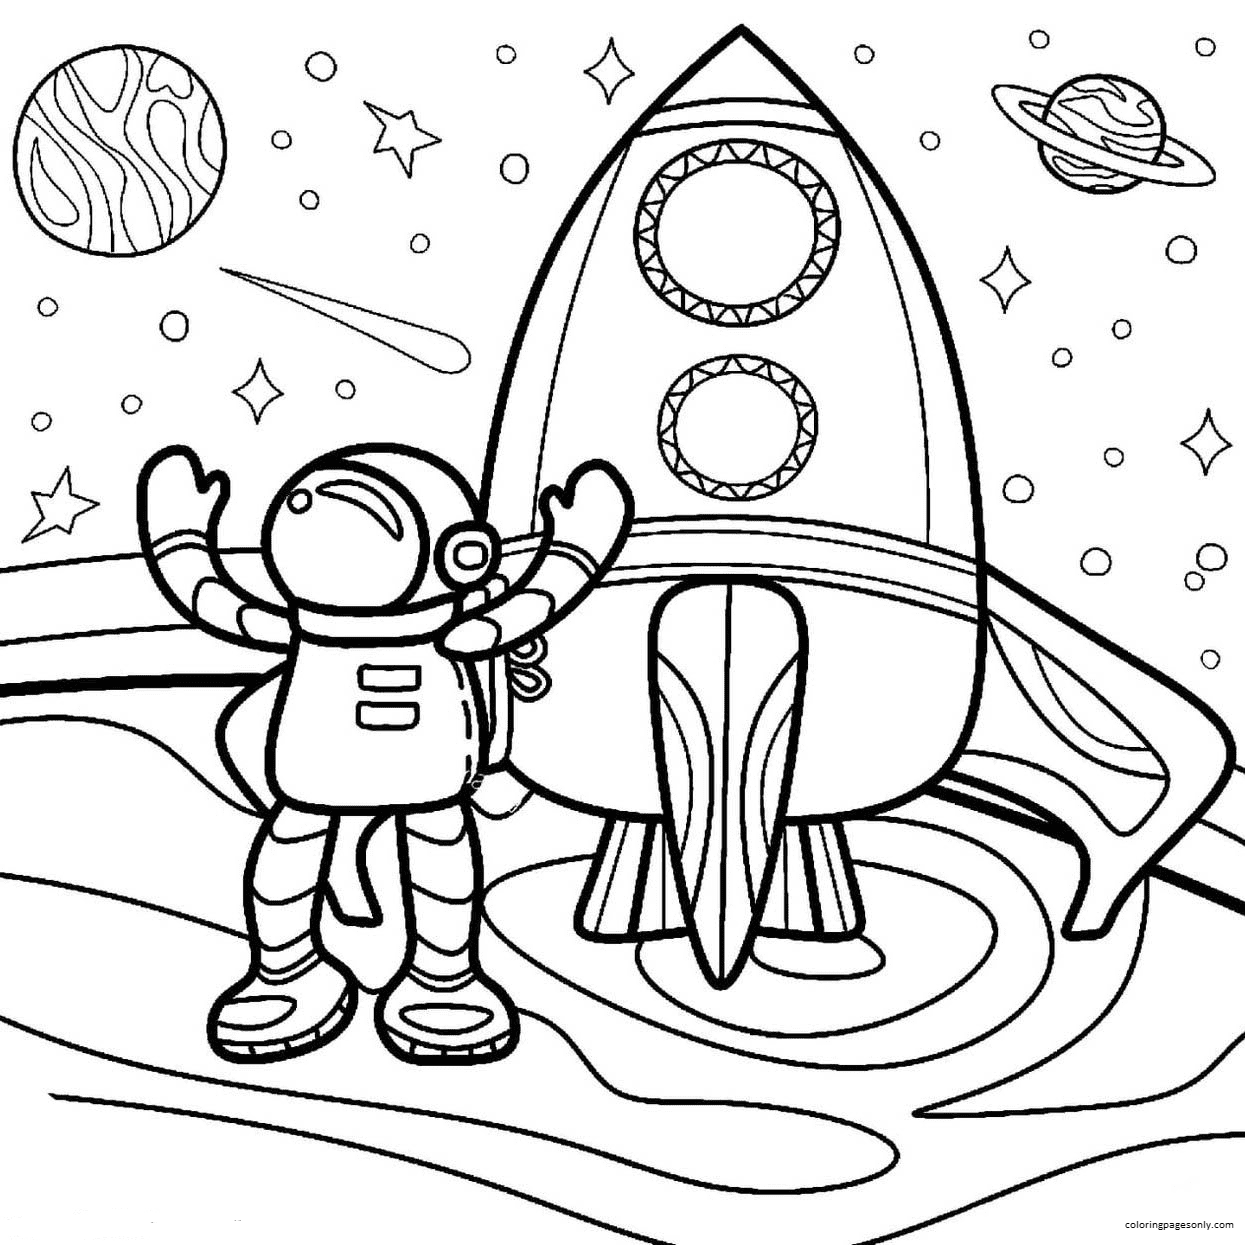 Cartoon Astronaut with Rocket 1 Coloring Page